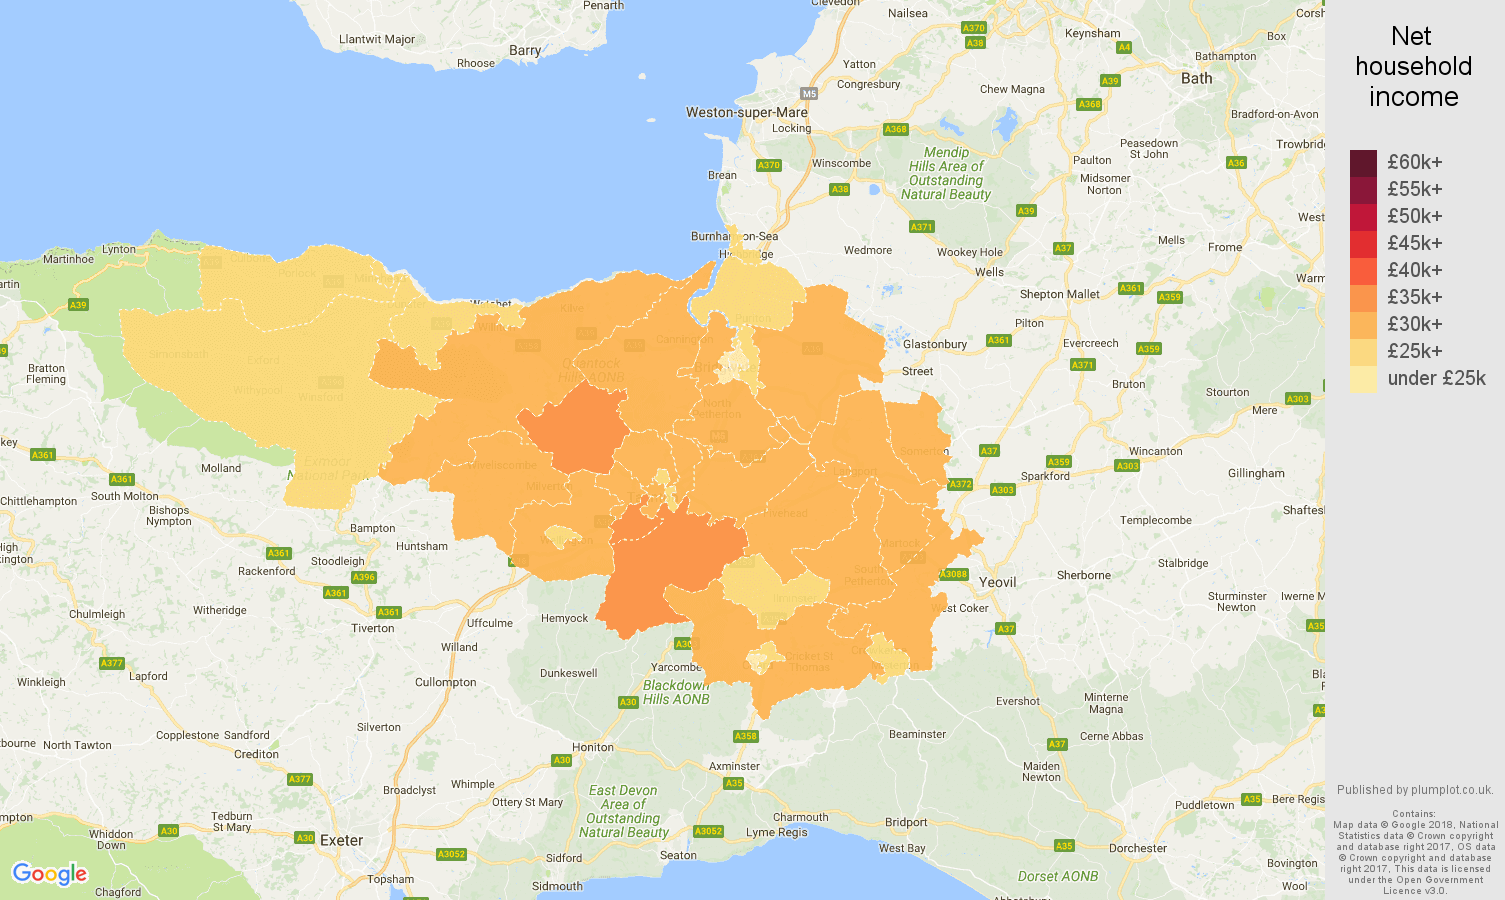 Taunton net household income map